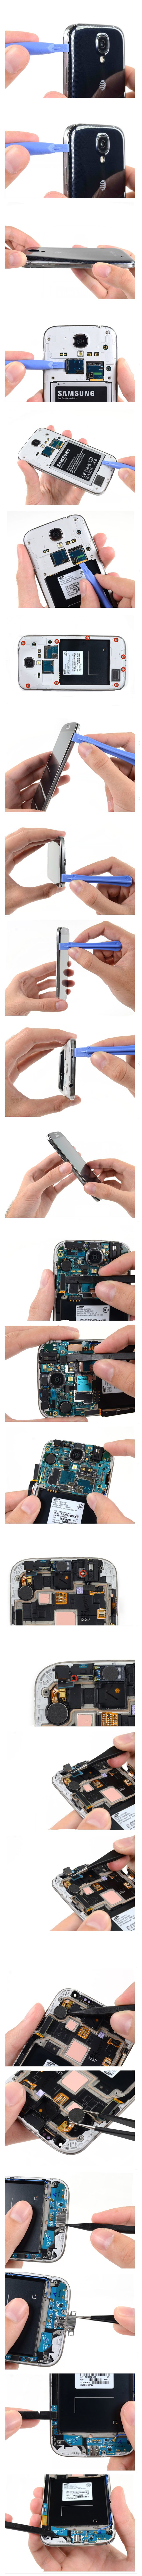 How To Replace Samsung Galaxy S4 Display Assembly? Samsung Galaxy S4 Display Assembly Replacement